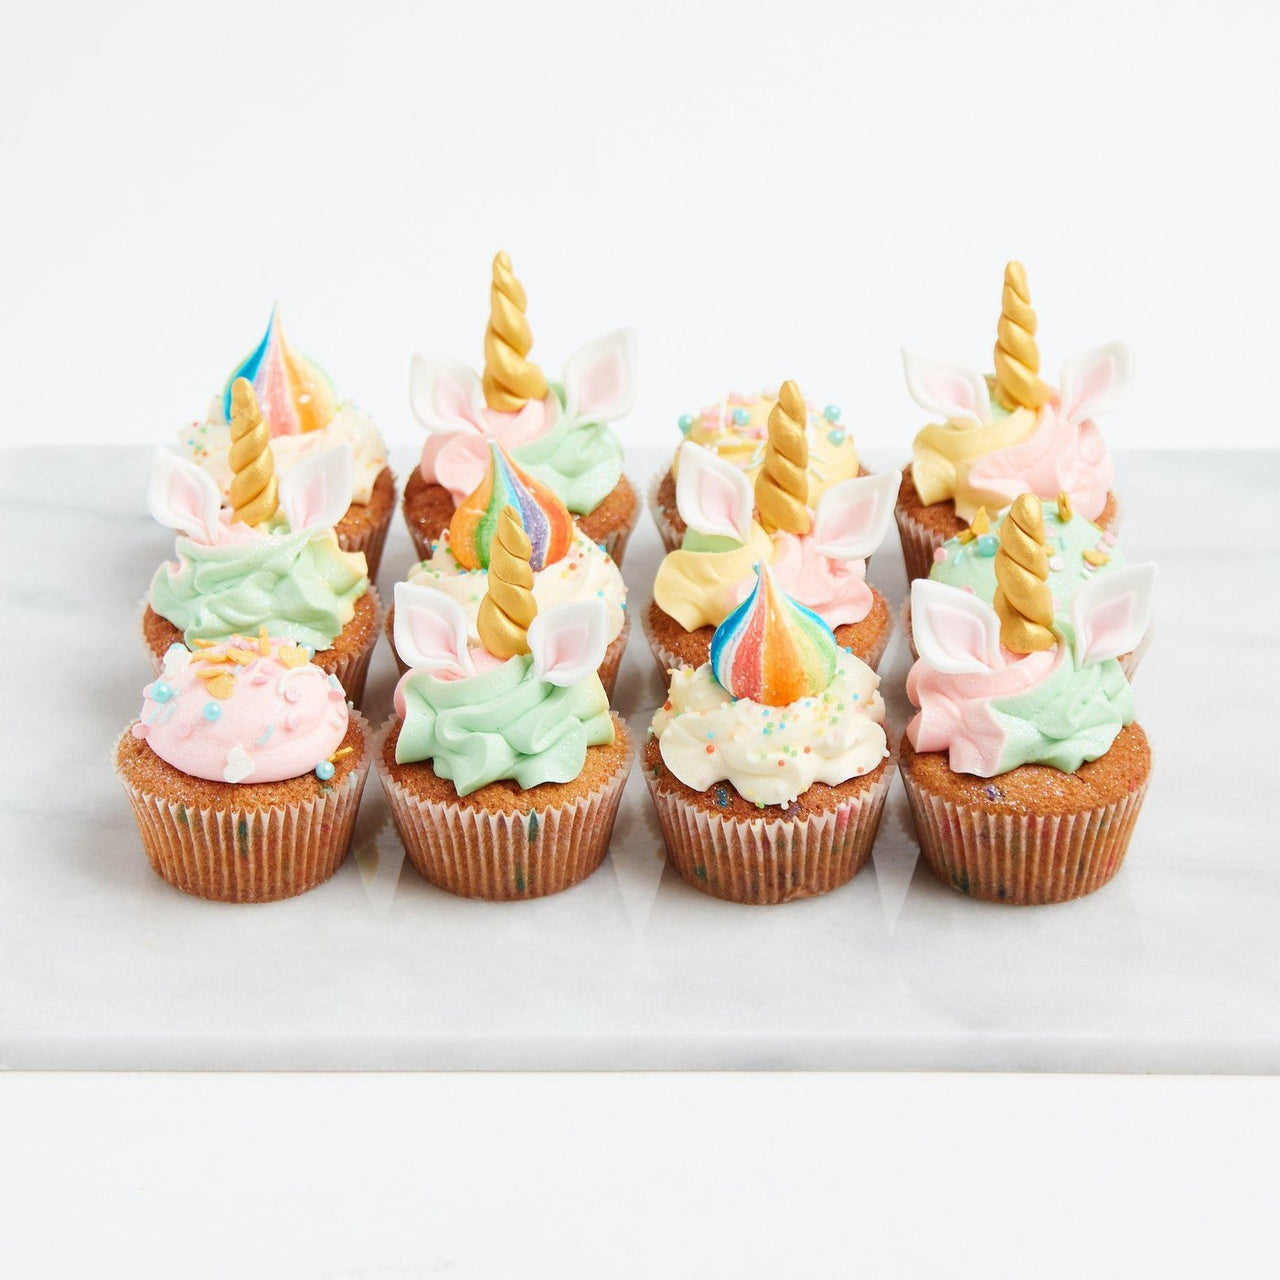 Full-On Unicorn Cupcakes by Crumbs & Doilies